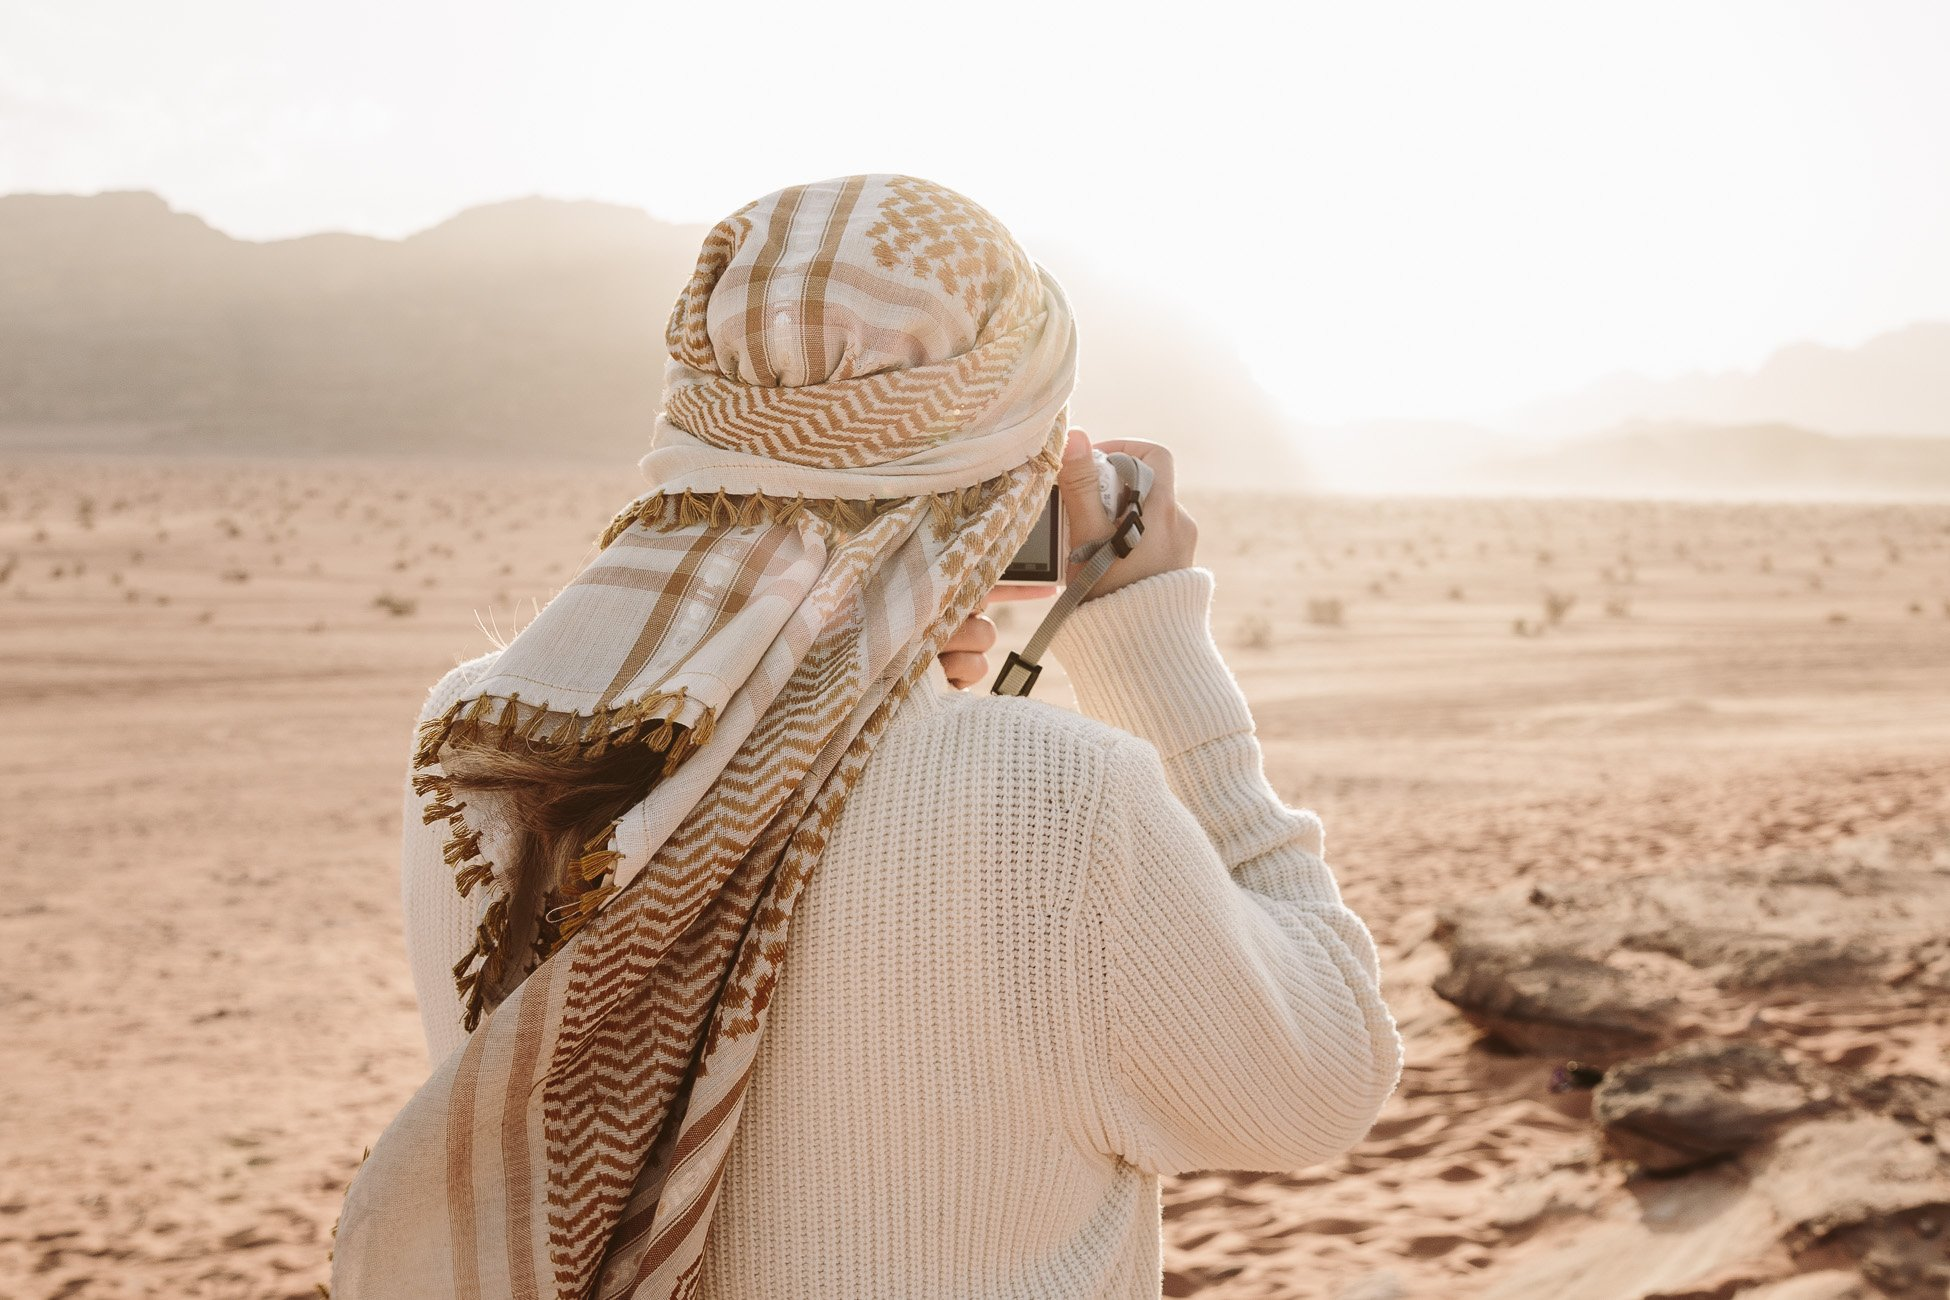 Me shooting in Wadi Rum Desert with the Canon 200D